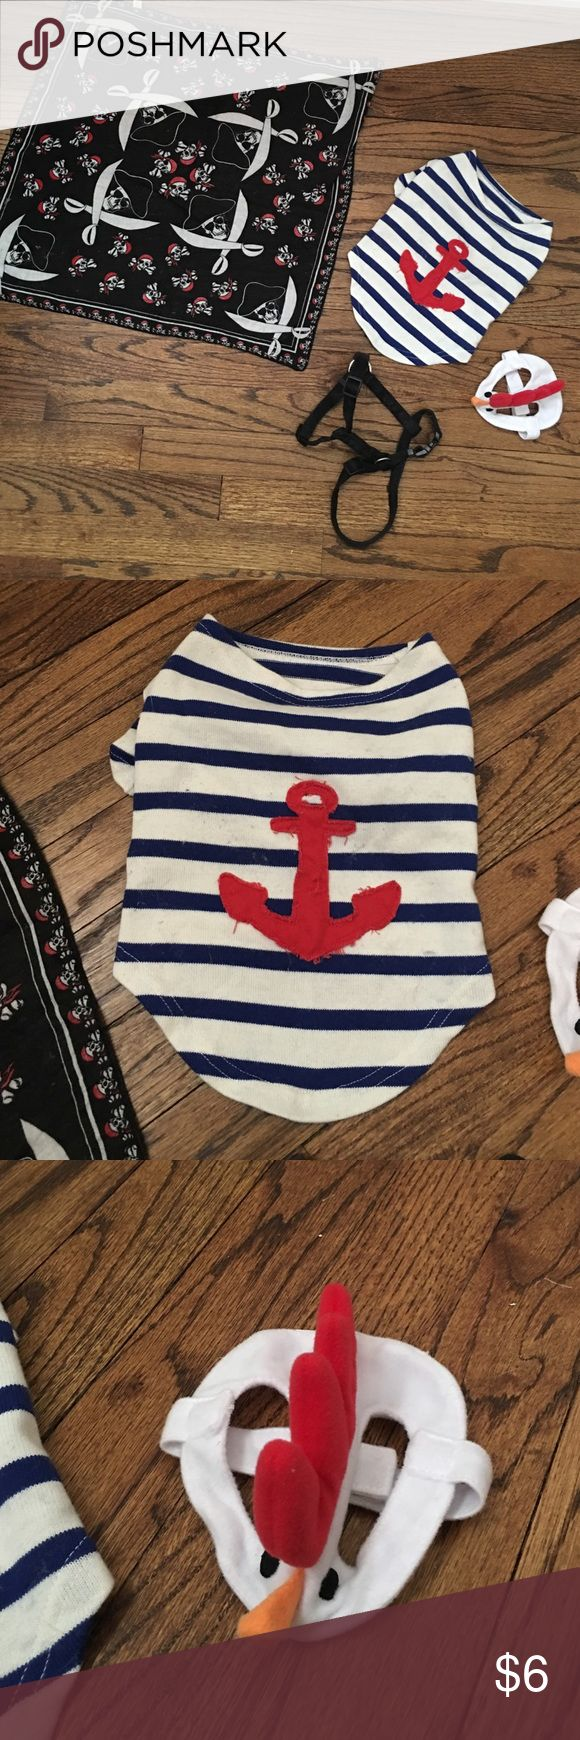 Small Dog Accessories Costumes Bandana Collar Small Dog Accessories Costumes Bandana Collar. Size small nautical shirt (for small terrier, etc), size medium chicken headband, regular size pirate bandana, medium size collar (for full grown terrier, etc) Old Navy Other